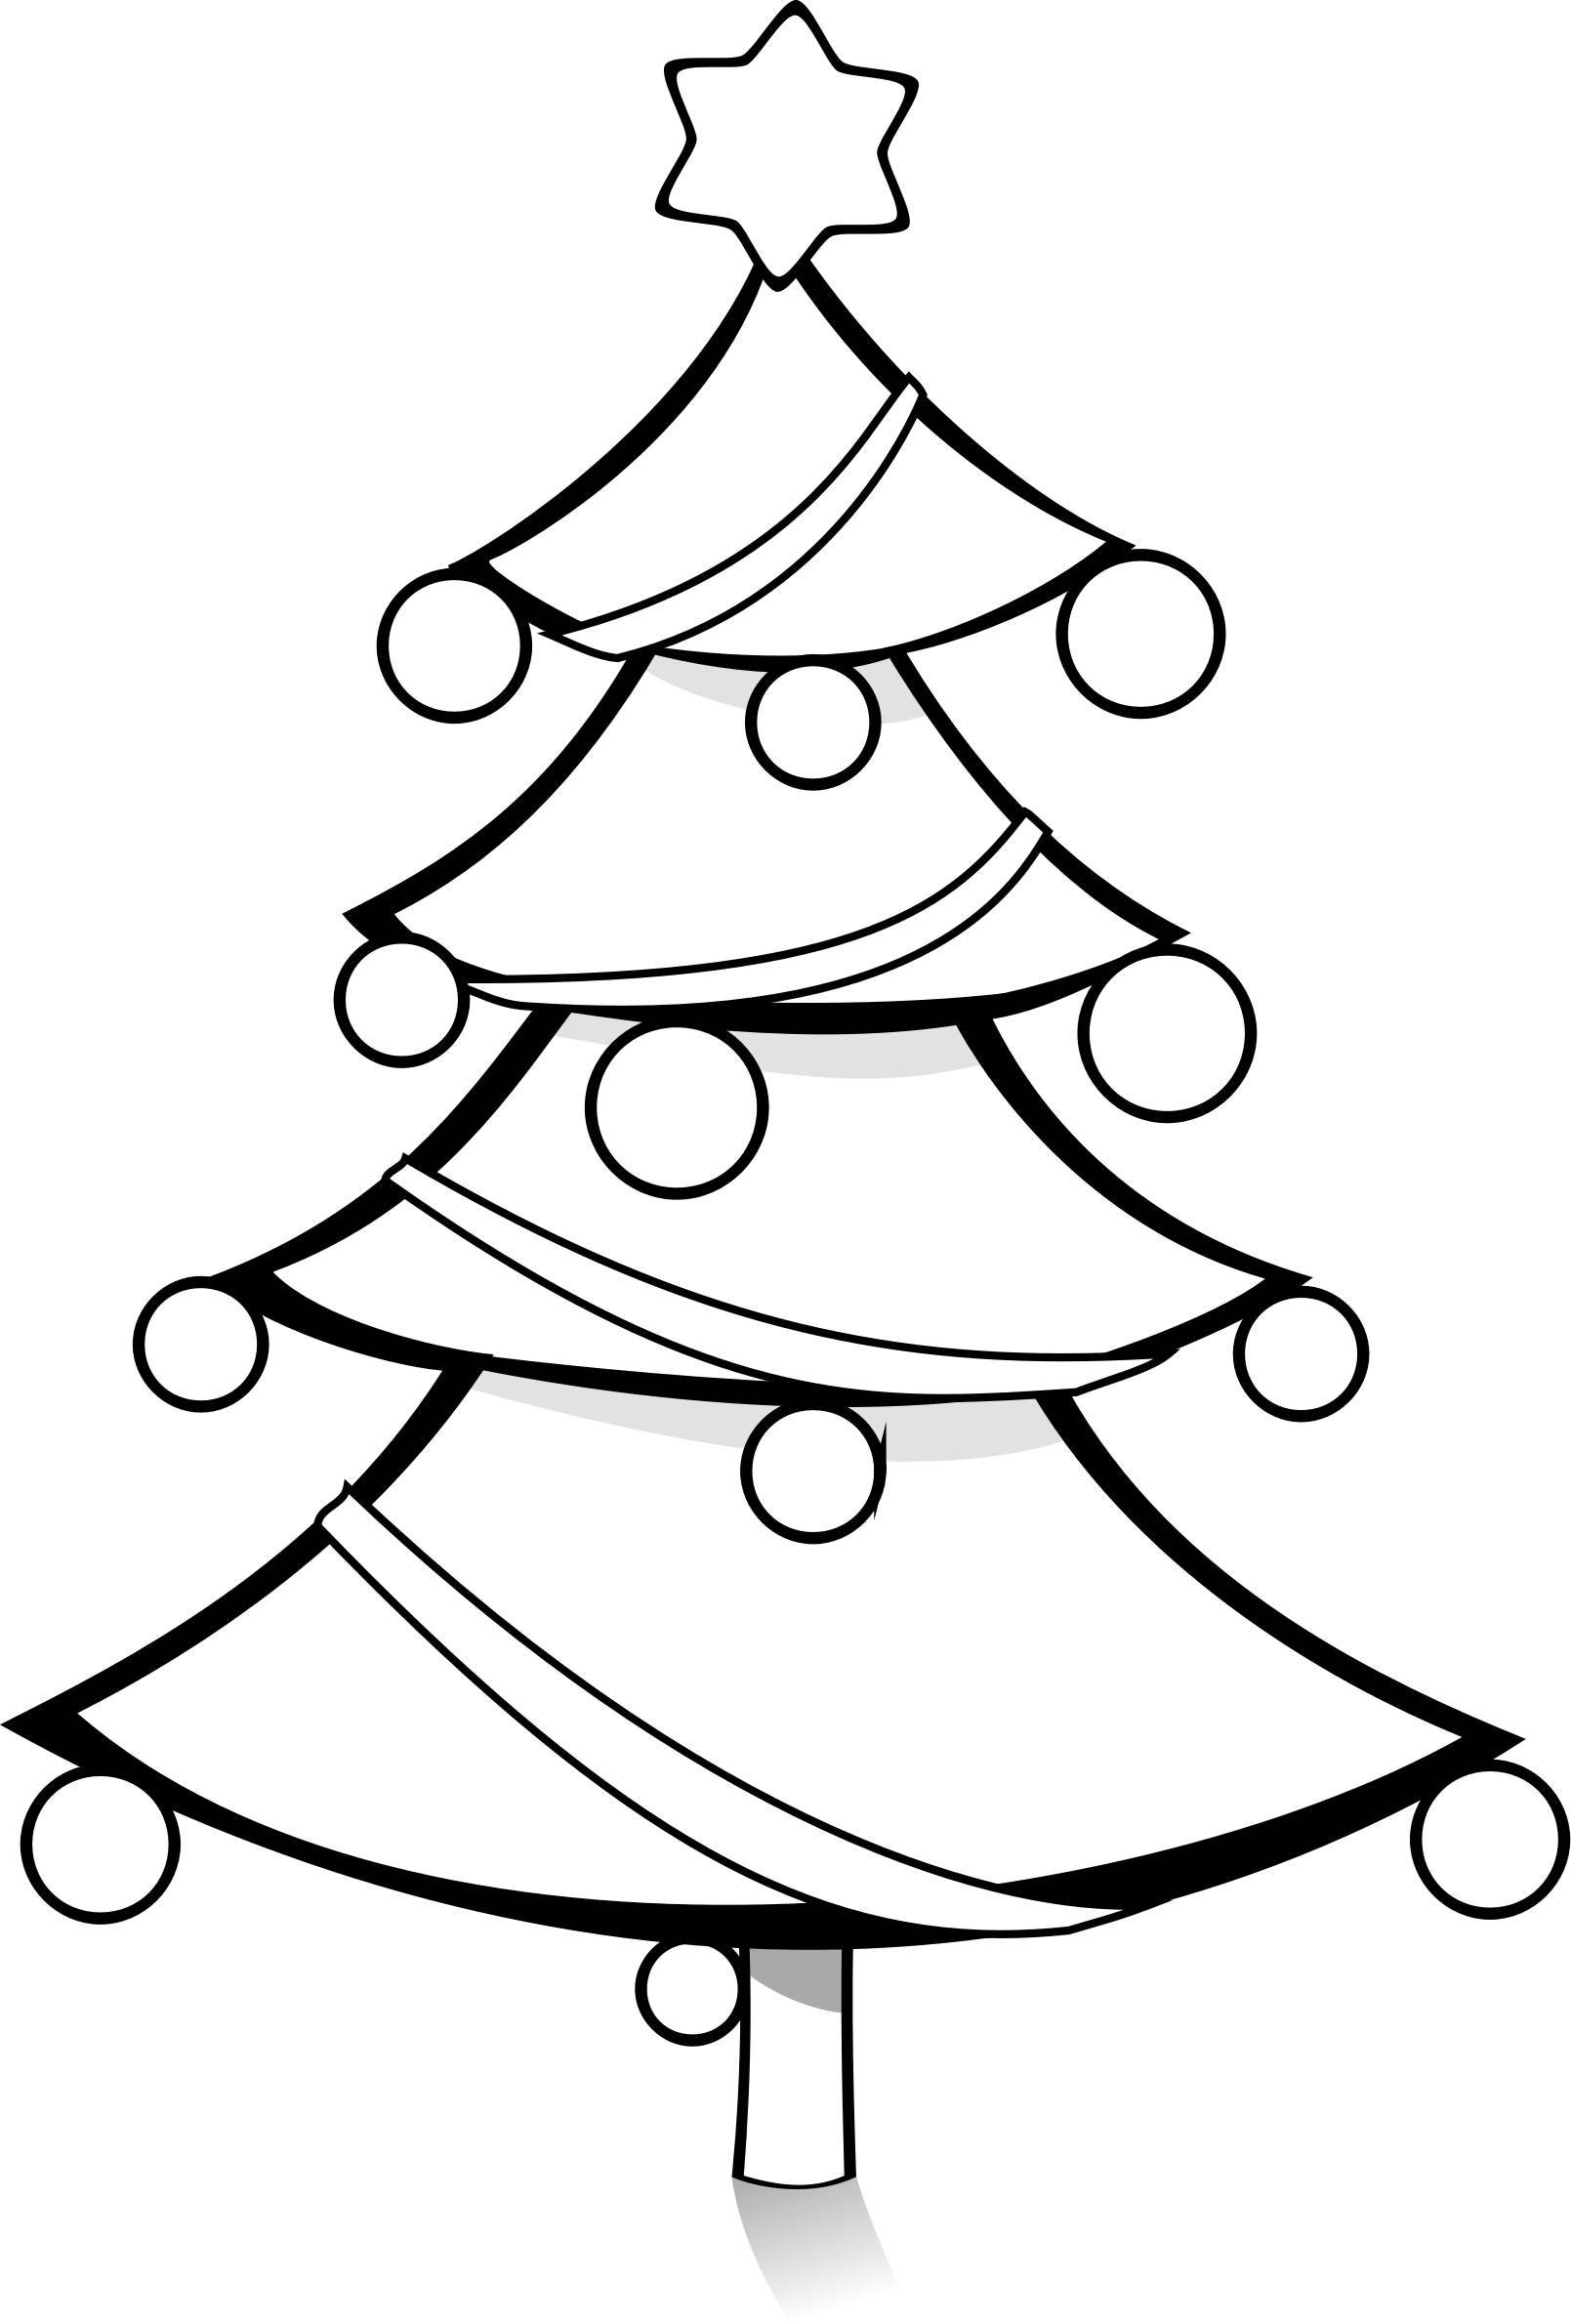 Christmas cookies clipart black and white transparent download baby nursery ~ Likable Christmas Tree Black And White Clip Art ... transparent download